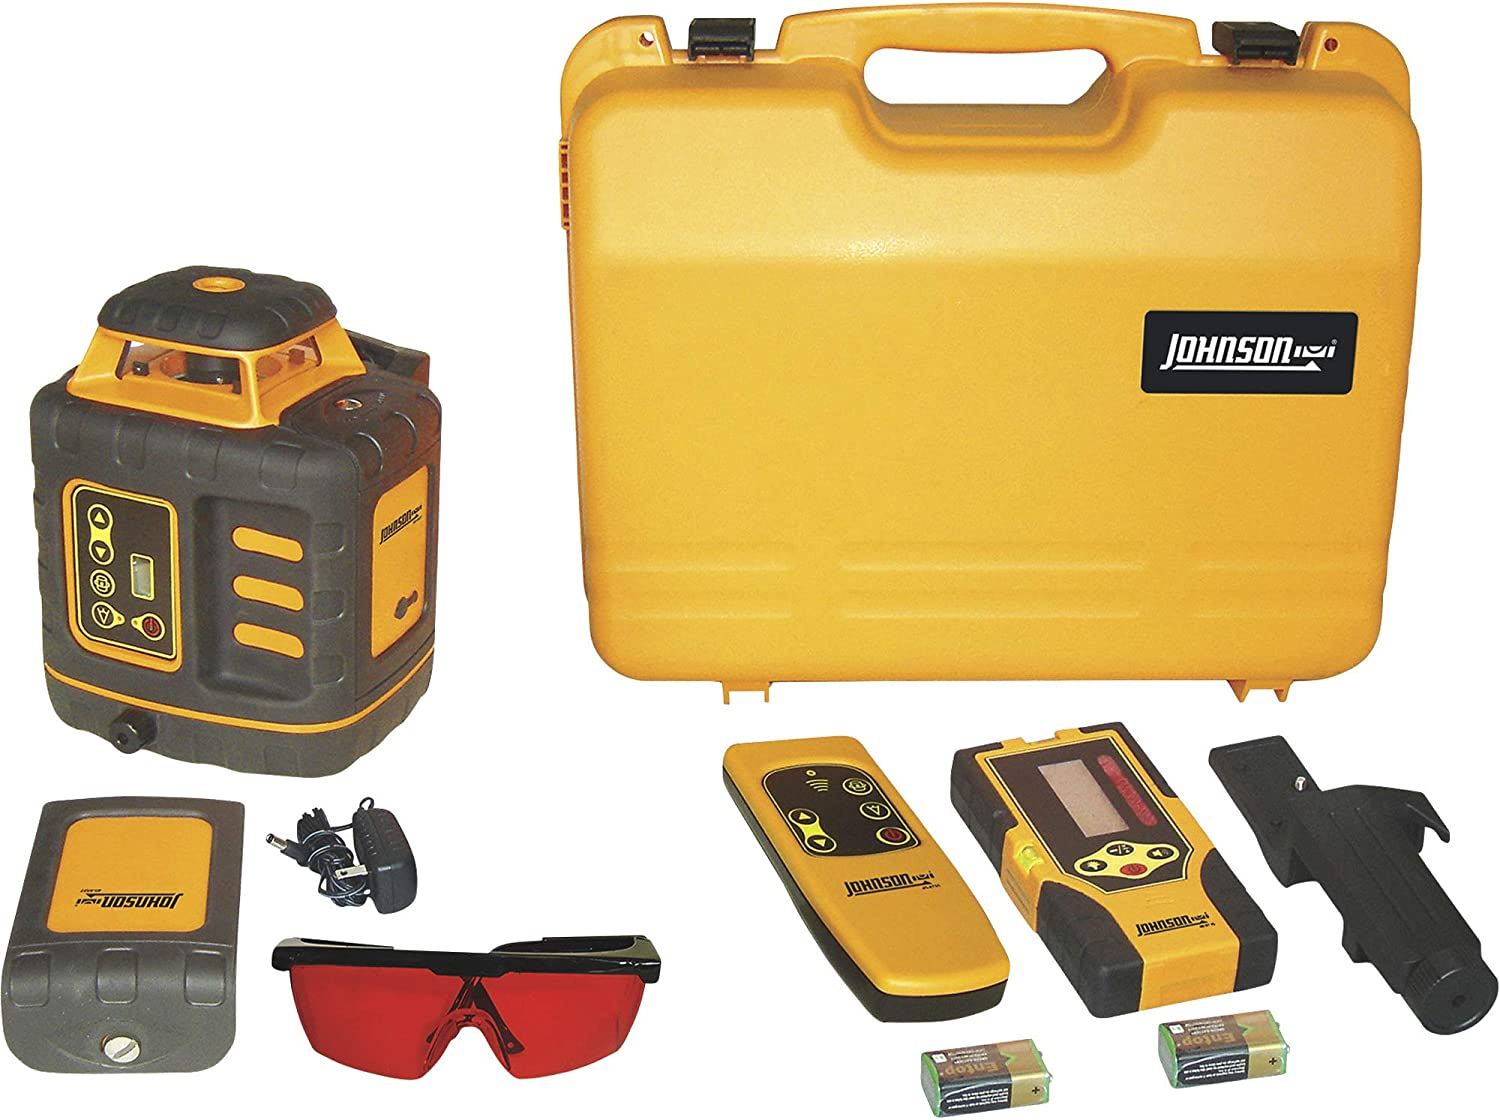 Johnson Level and Tool 40-6532 Self-Leveling Rotary Laser Level